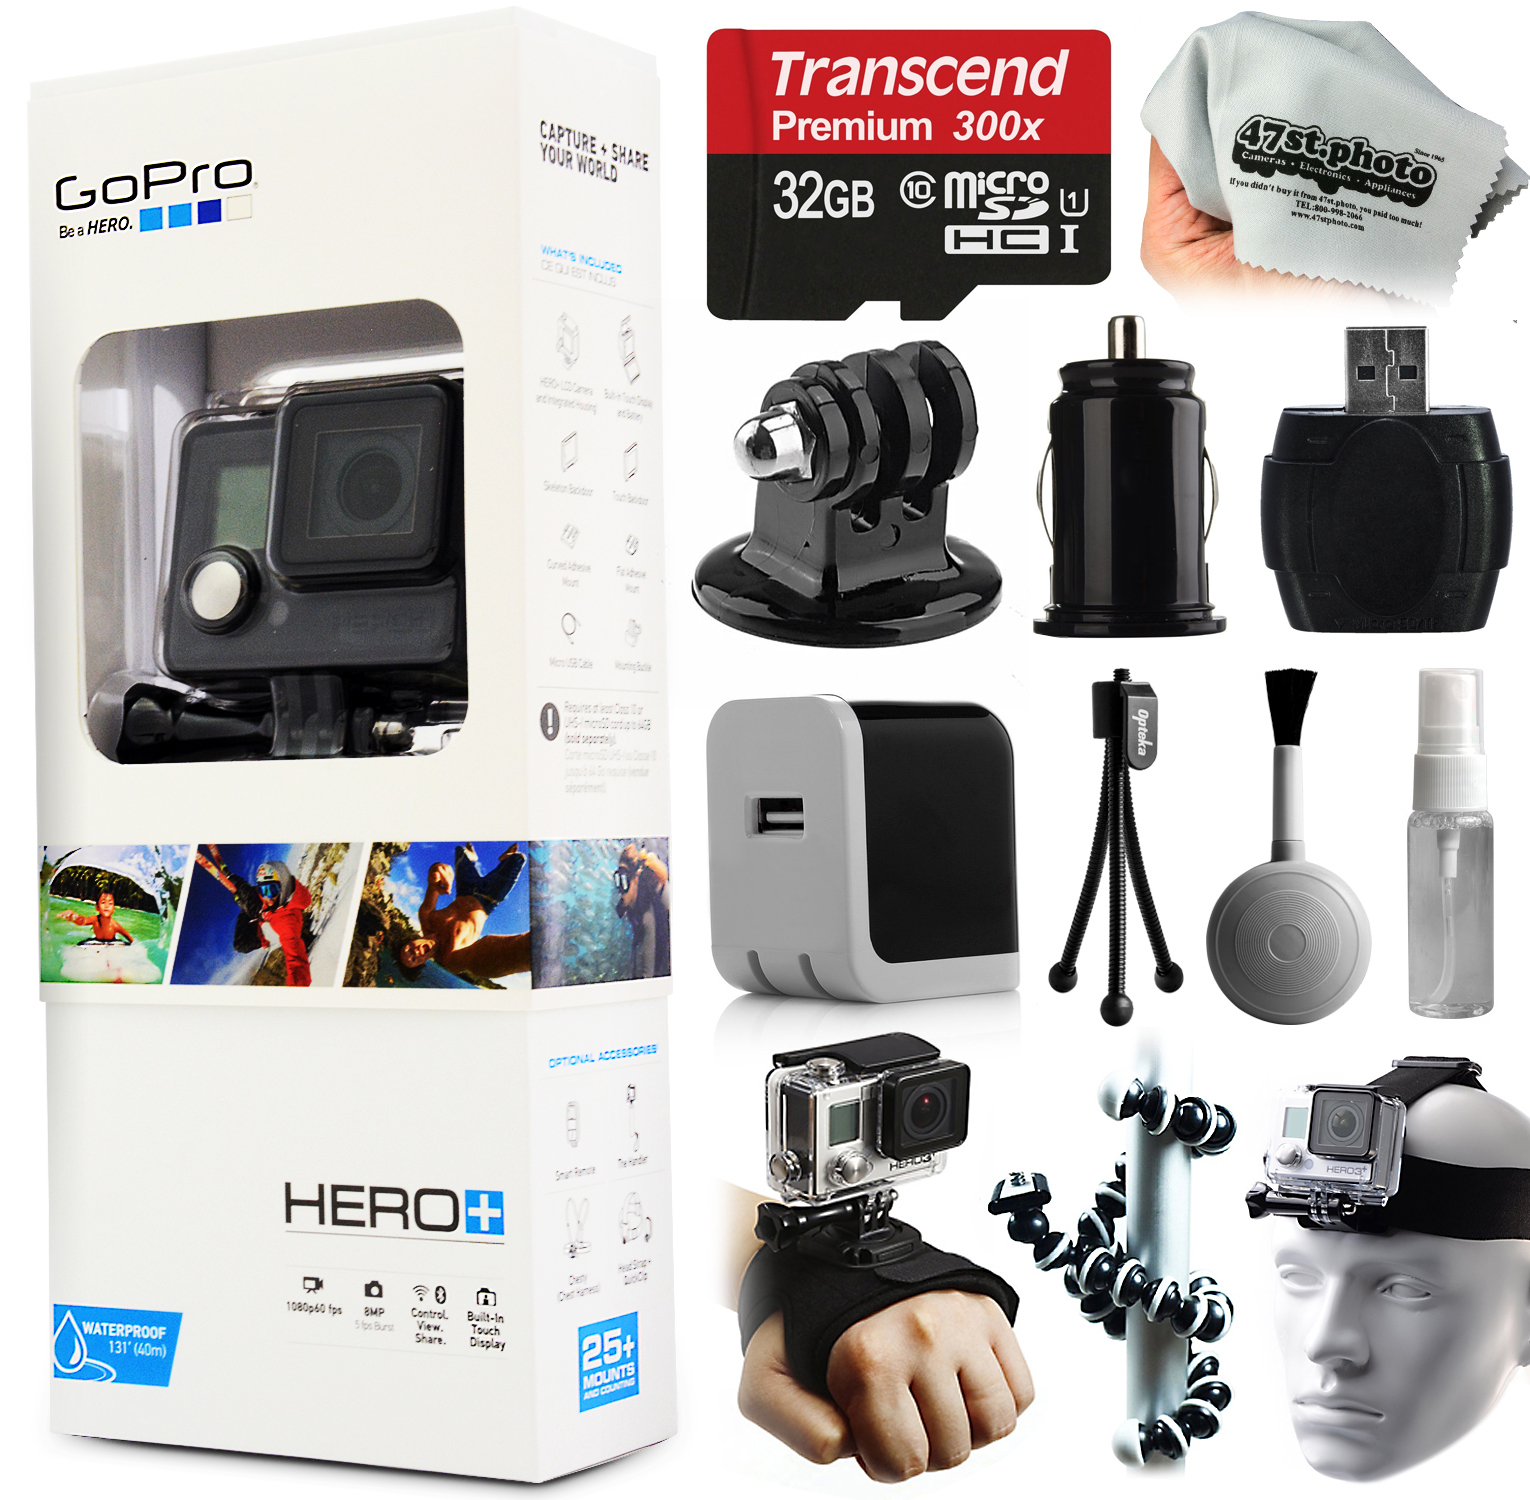 GoPro HERO+ Camera Camcorder (CHDHC-101) with Starter Accessories Kit includes 32GB Card + Home & Car Charger + Head Helmet Strap + Hand Glove + Flexible Octopus Tripod + Dust Cleaning Kit + More